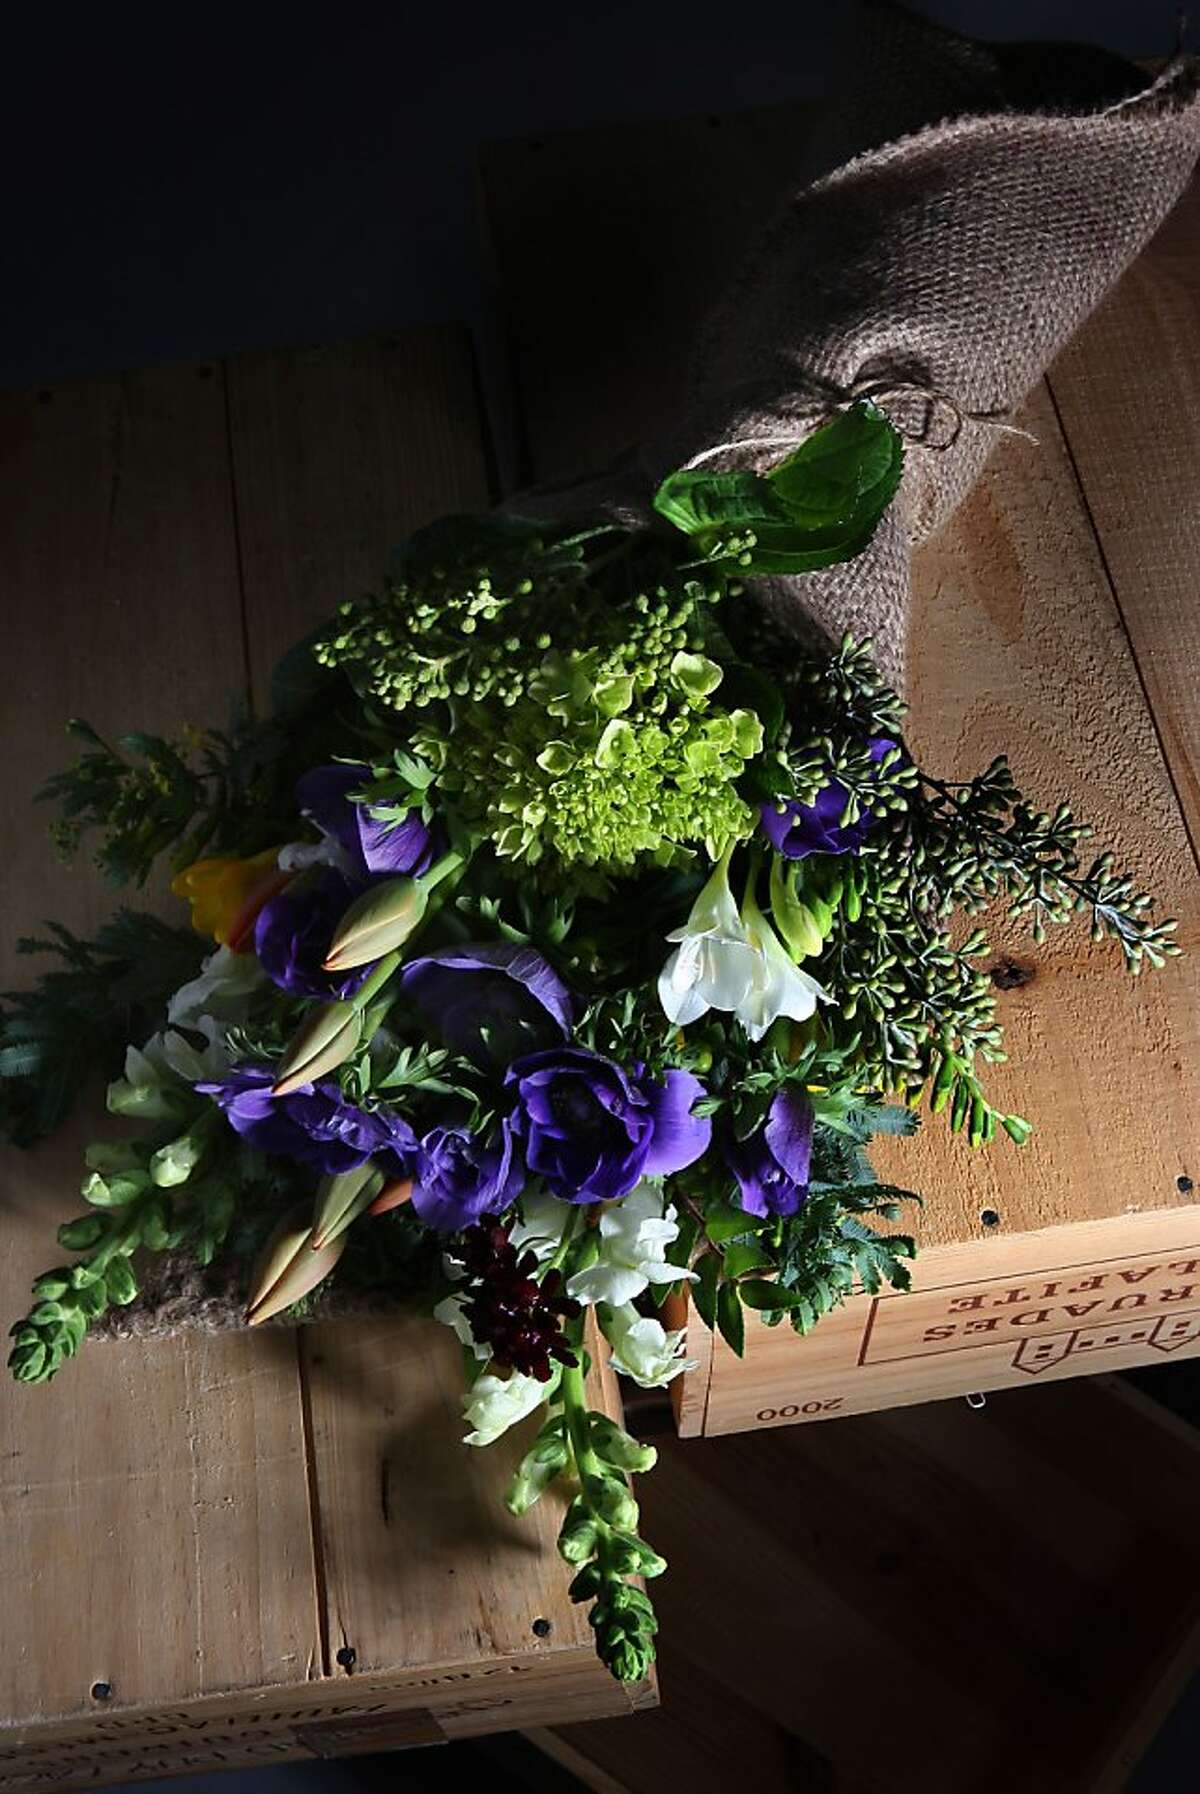 A flower arrangement made by eco-minded florist Christina Stembel of Farmgirl Flowers in San Francisco, Calif., on Thursday, February 2, 2012. She sources flowers and plants which are locally grown.